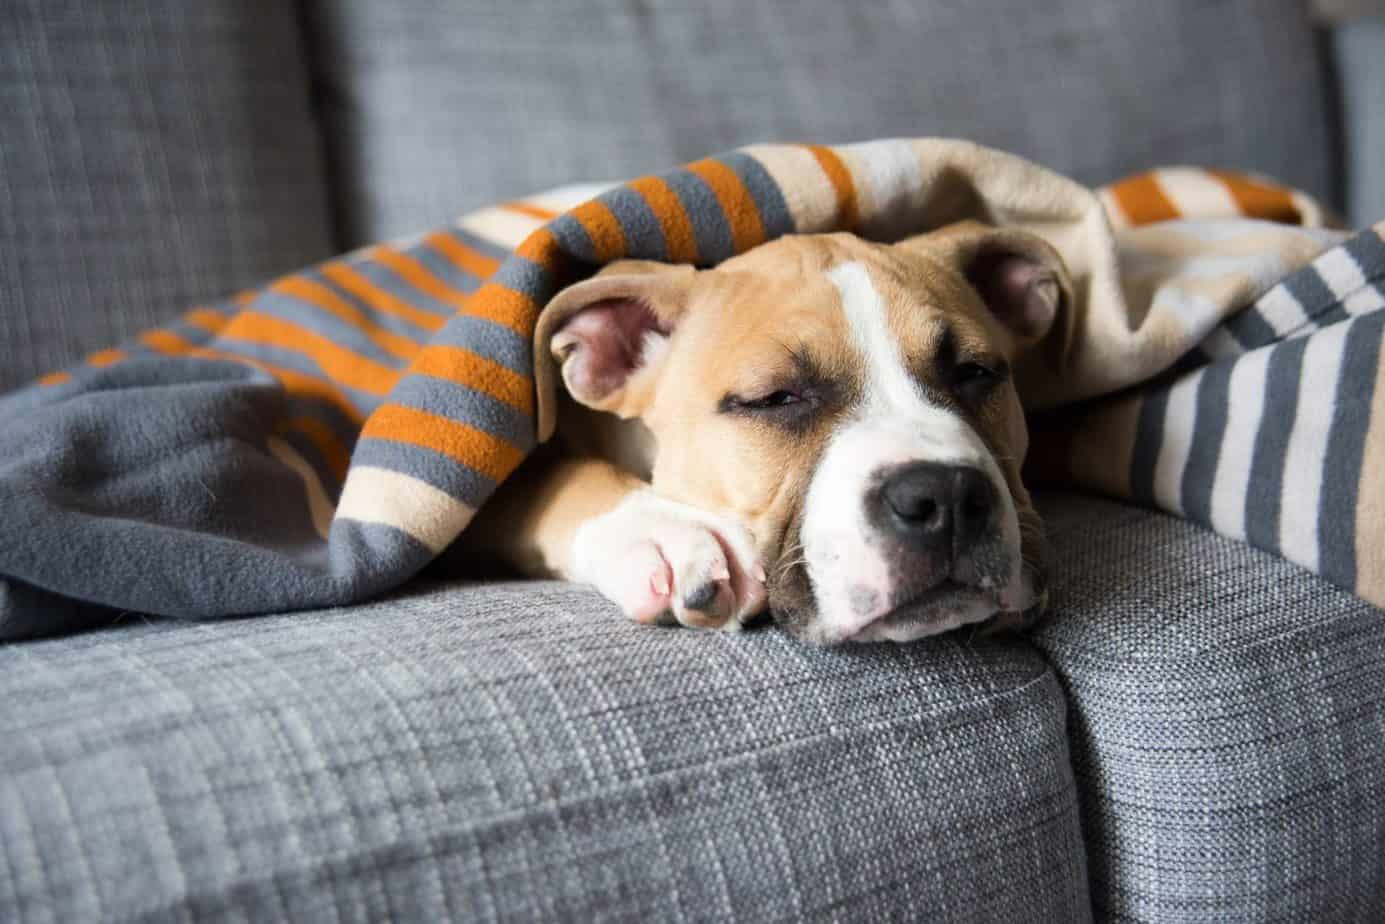 Some essential oils can help a dogs cough, but it doesn't replace a visit to the vet.